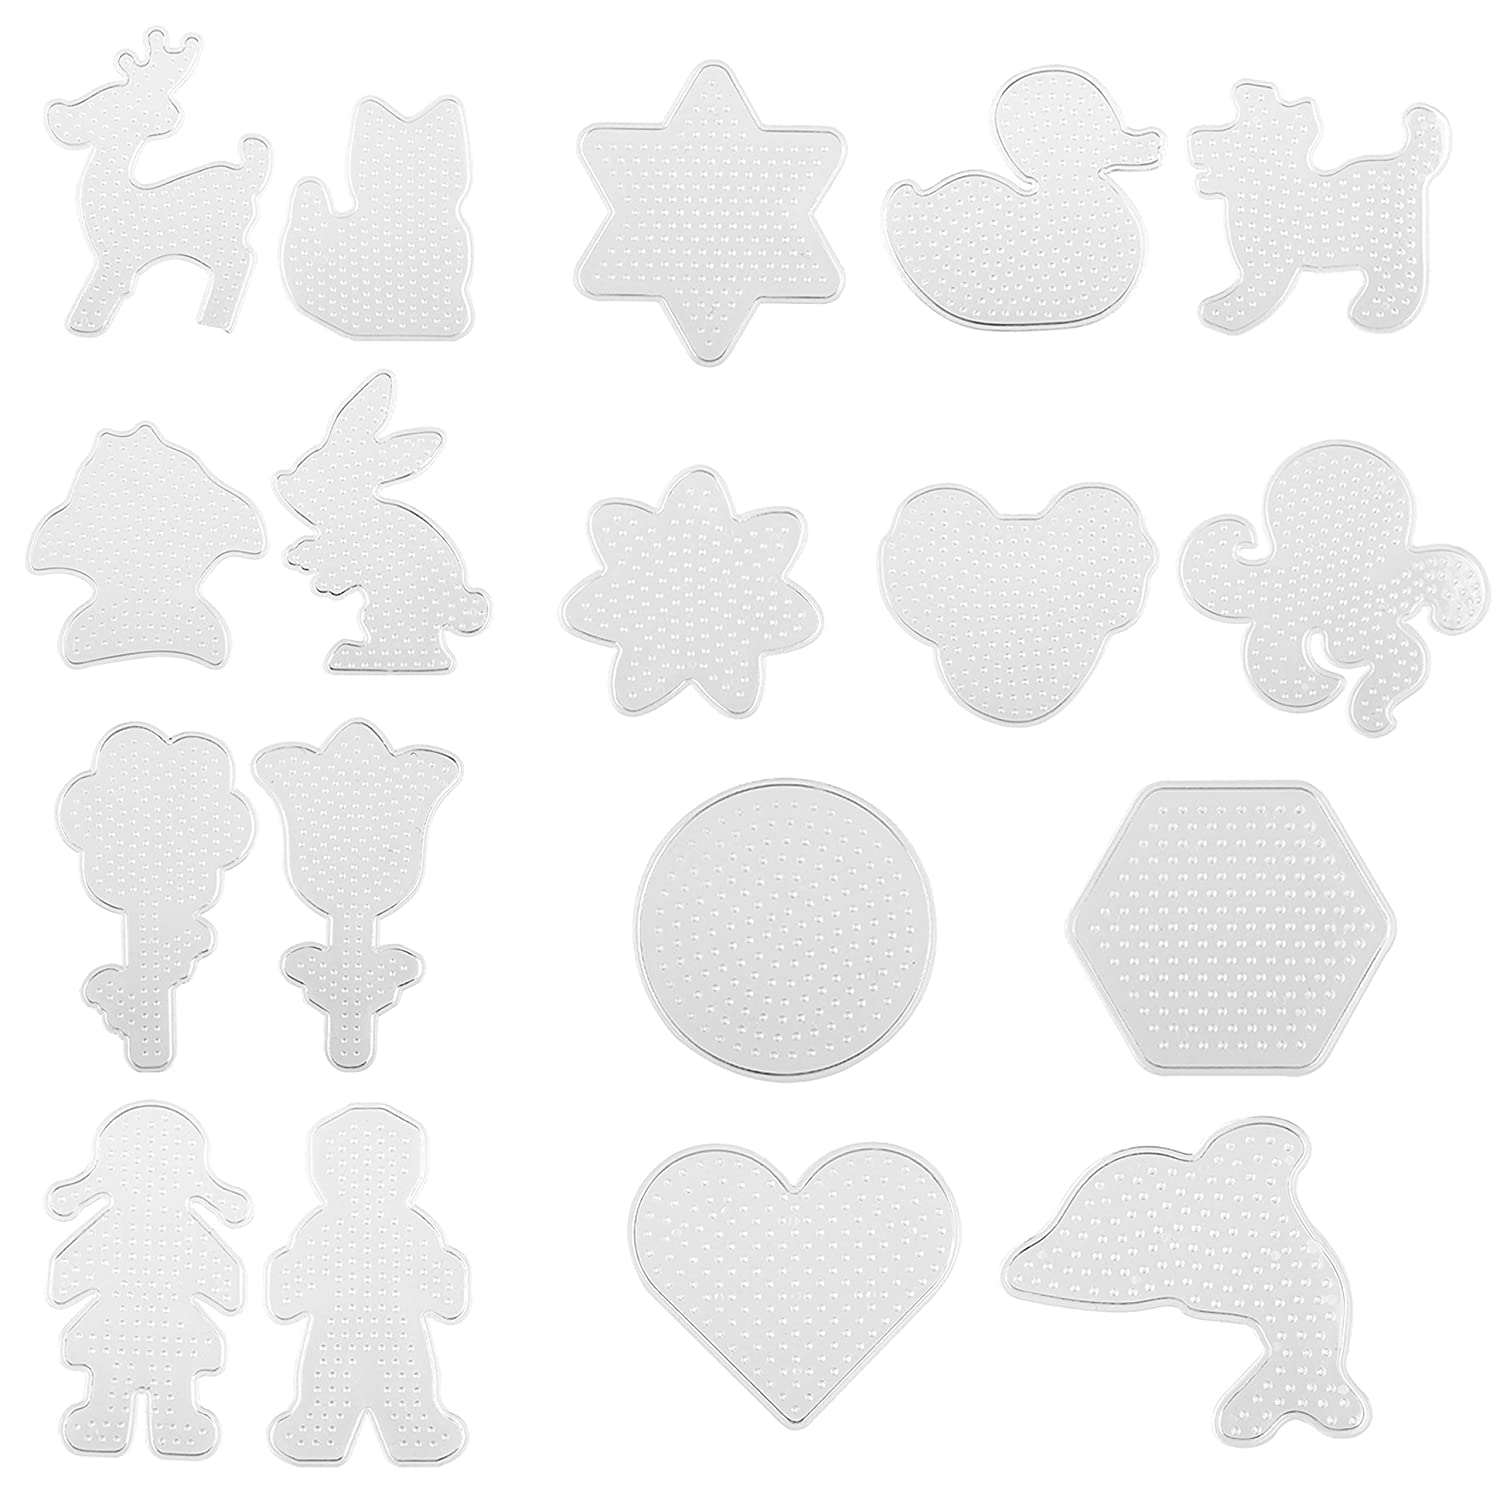 Kare /& Kind Fuse Beads Pegboards Kids DIY Arts and Craft Activities 19 pcs Reusable Ironing Paper and Tweezers Also Includes Colorful Card Templates